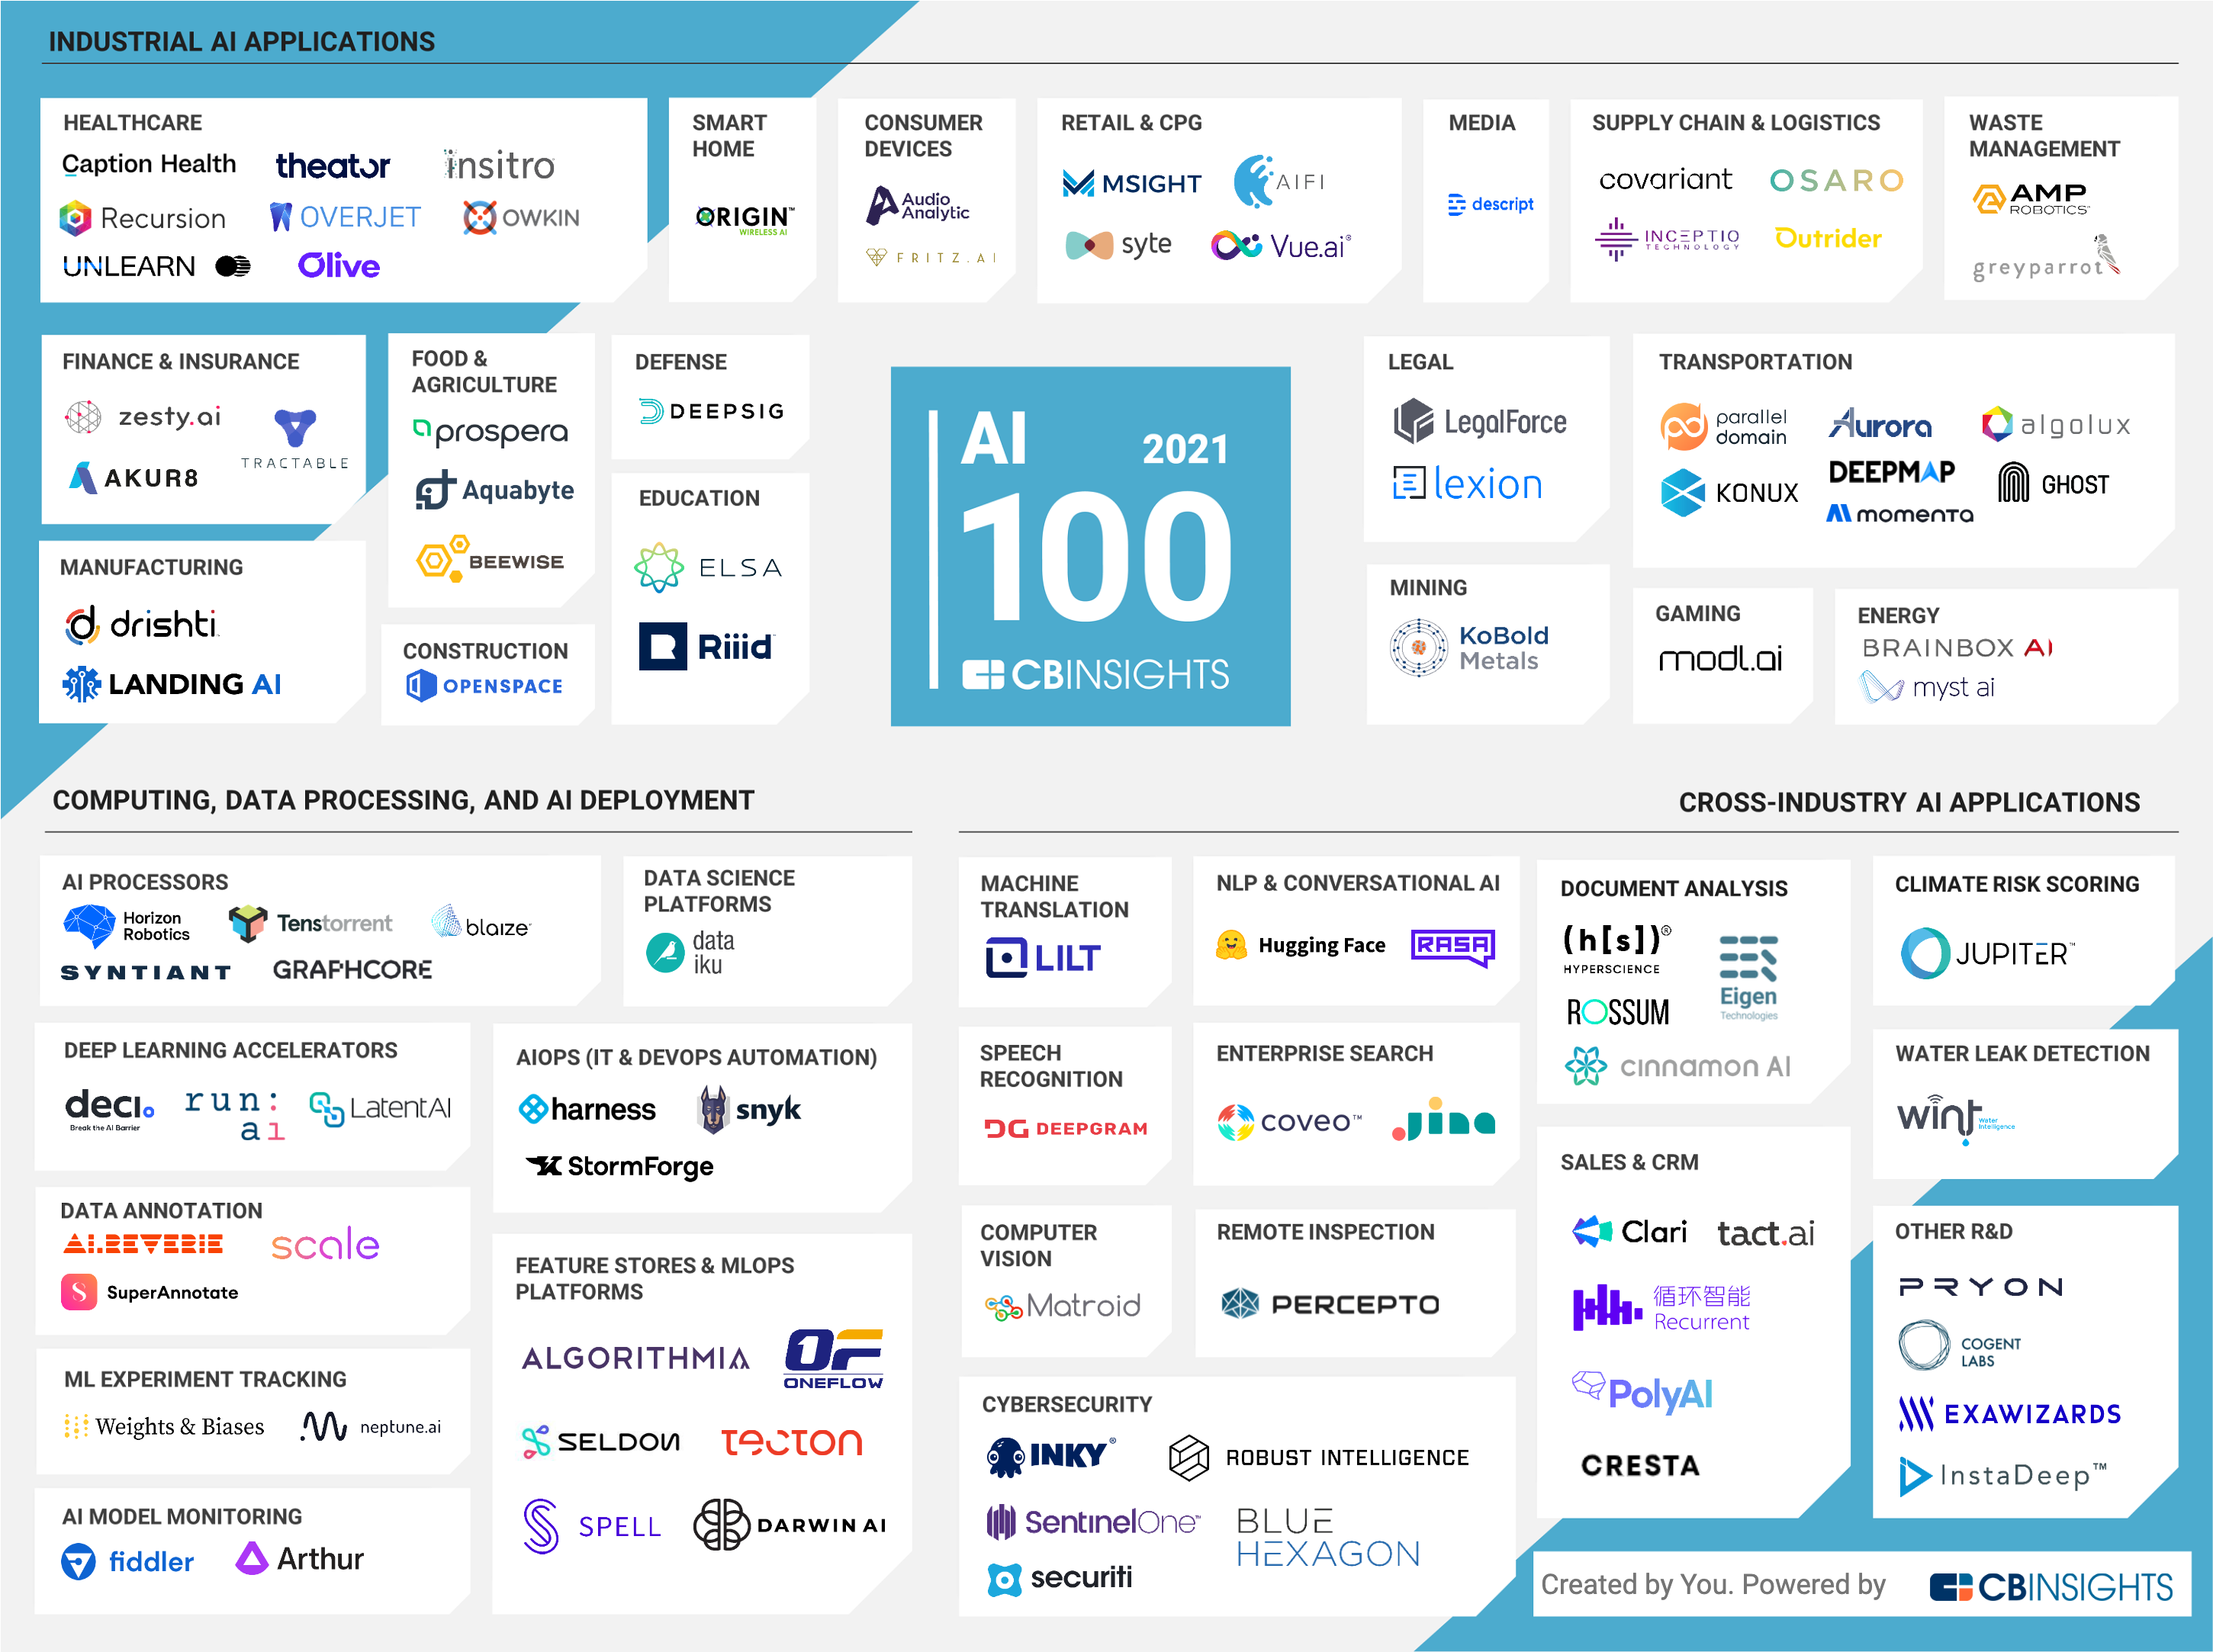 Fiddler AI named one of the most promising AI companies in the world in 2021 by CB Insights